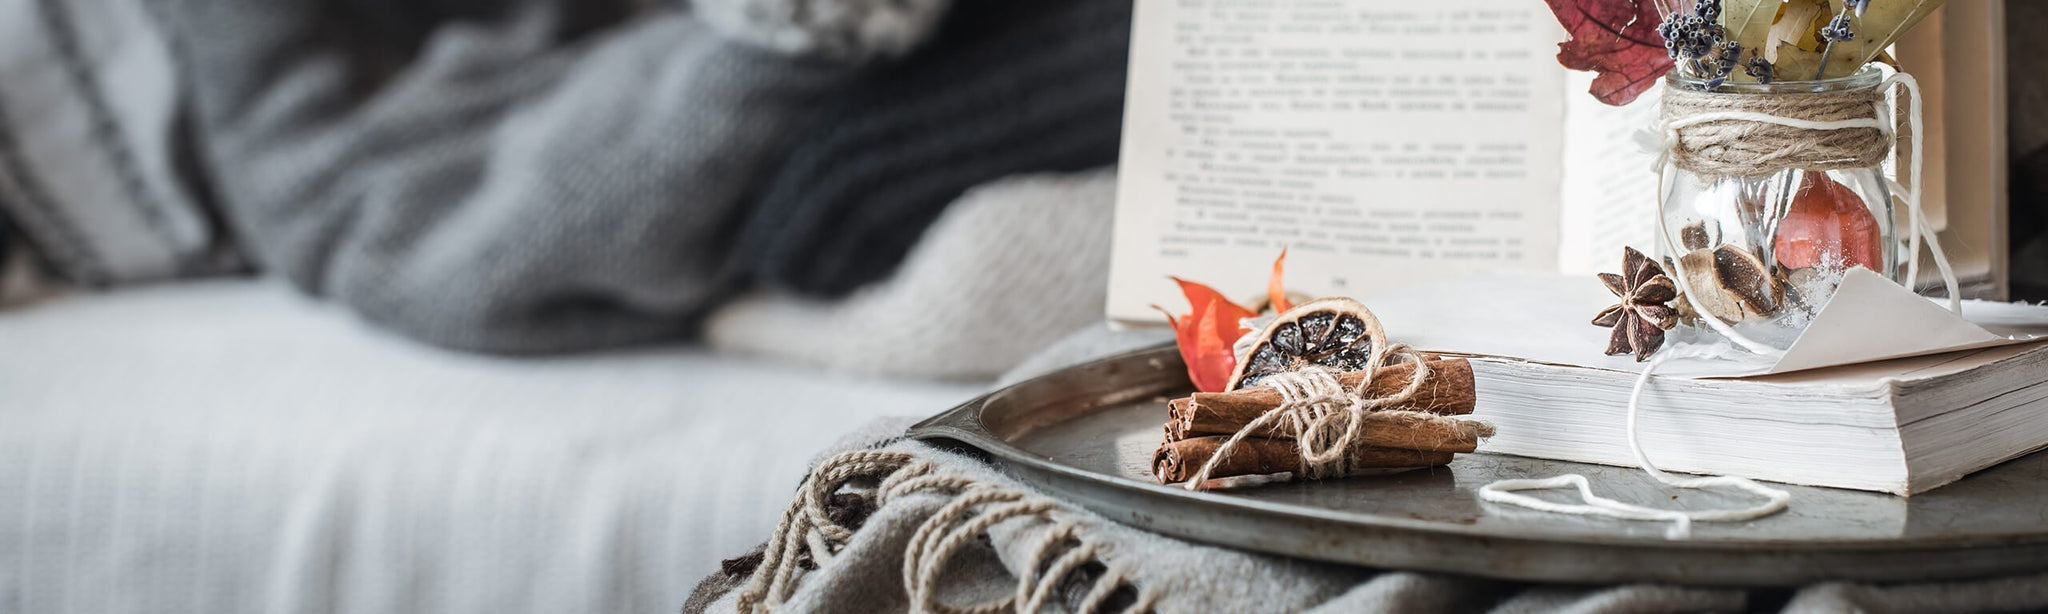 What can we learn from Hygge?